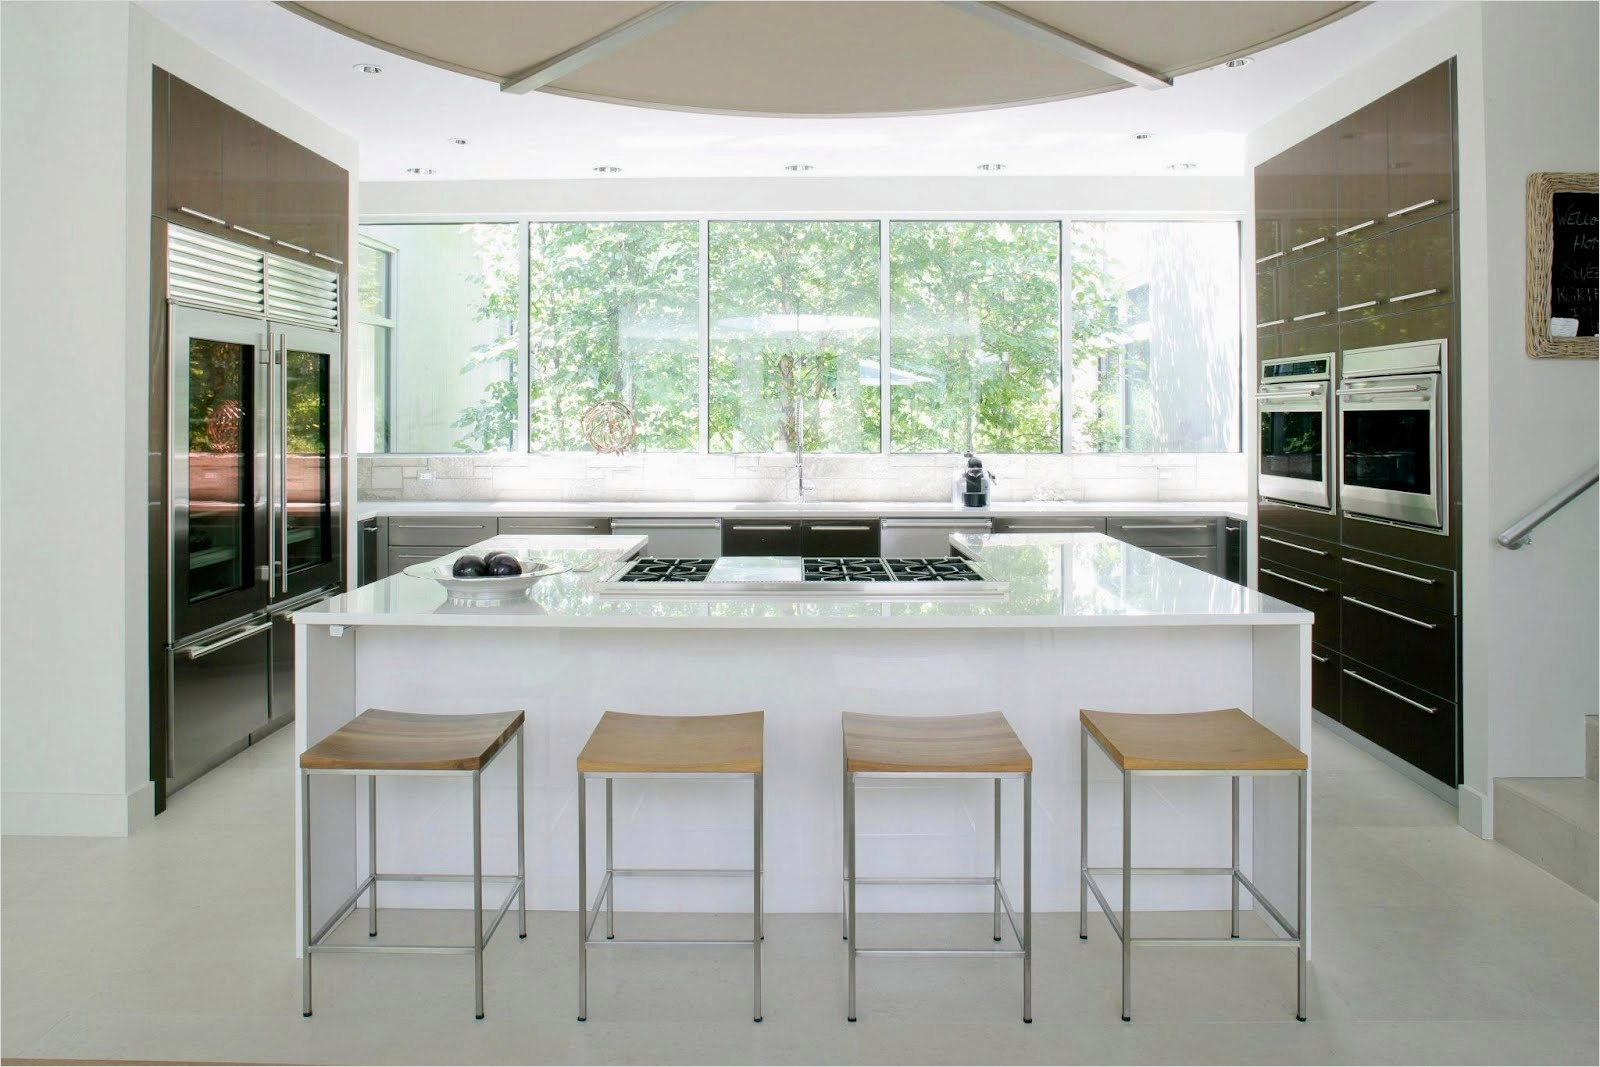 43 Stunning Minimalist Farmhouse Kitchen Cabinets 87 Cococozy See This House White On White In A Modern Hamptons Farmhouse 5